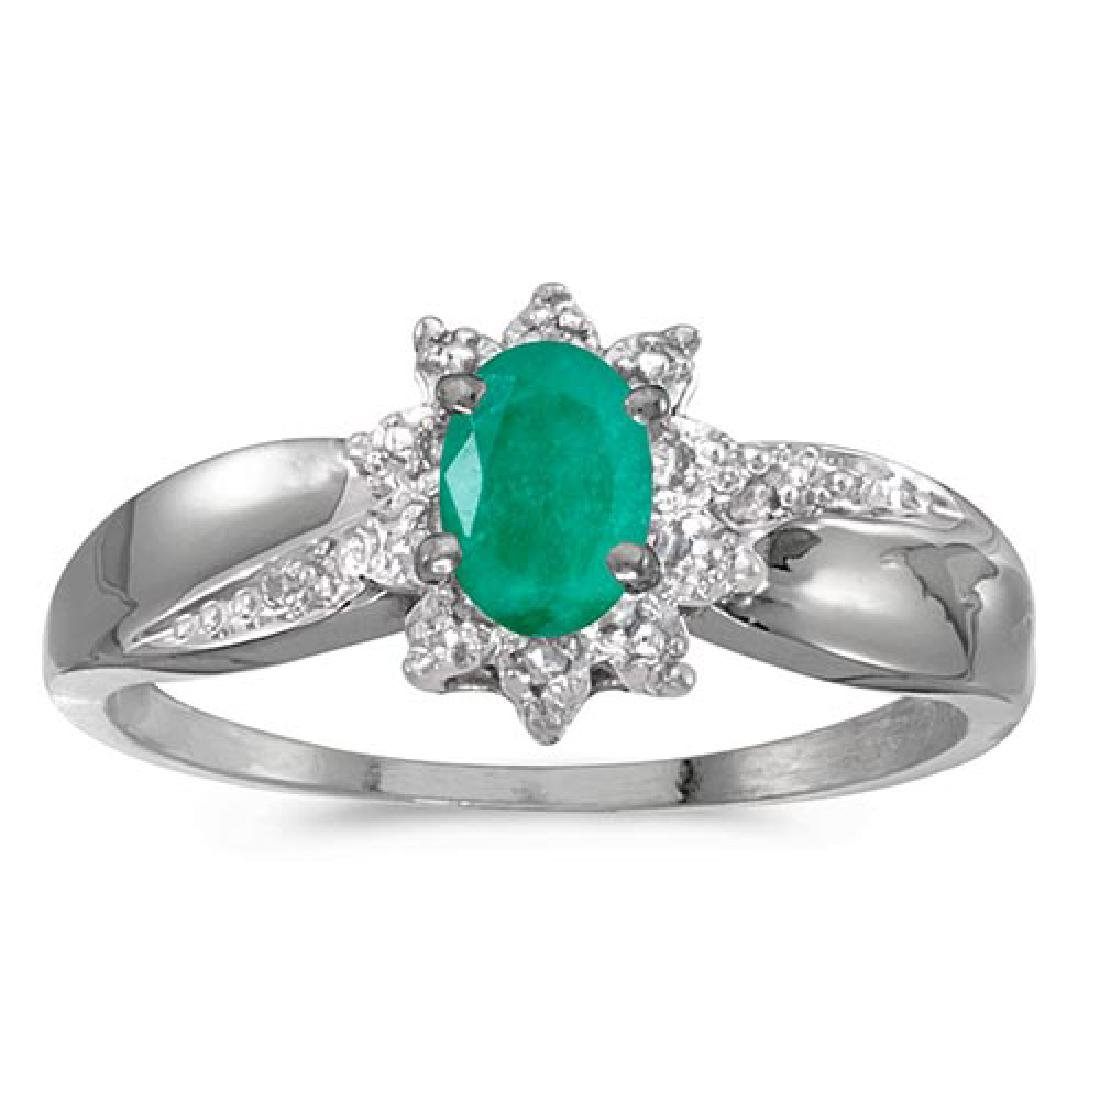 Certified 14k White Gold Oval Emerald And Diamond Ring